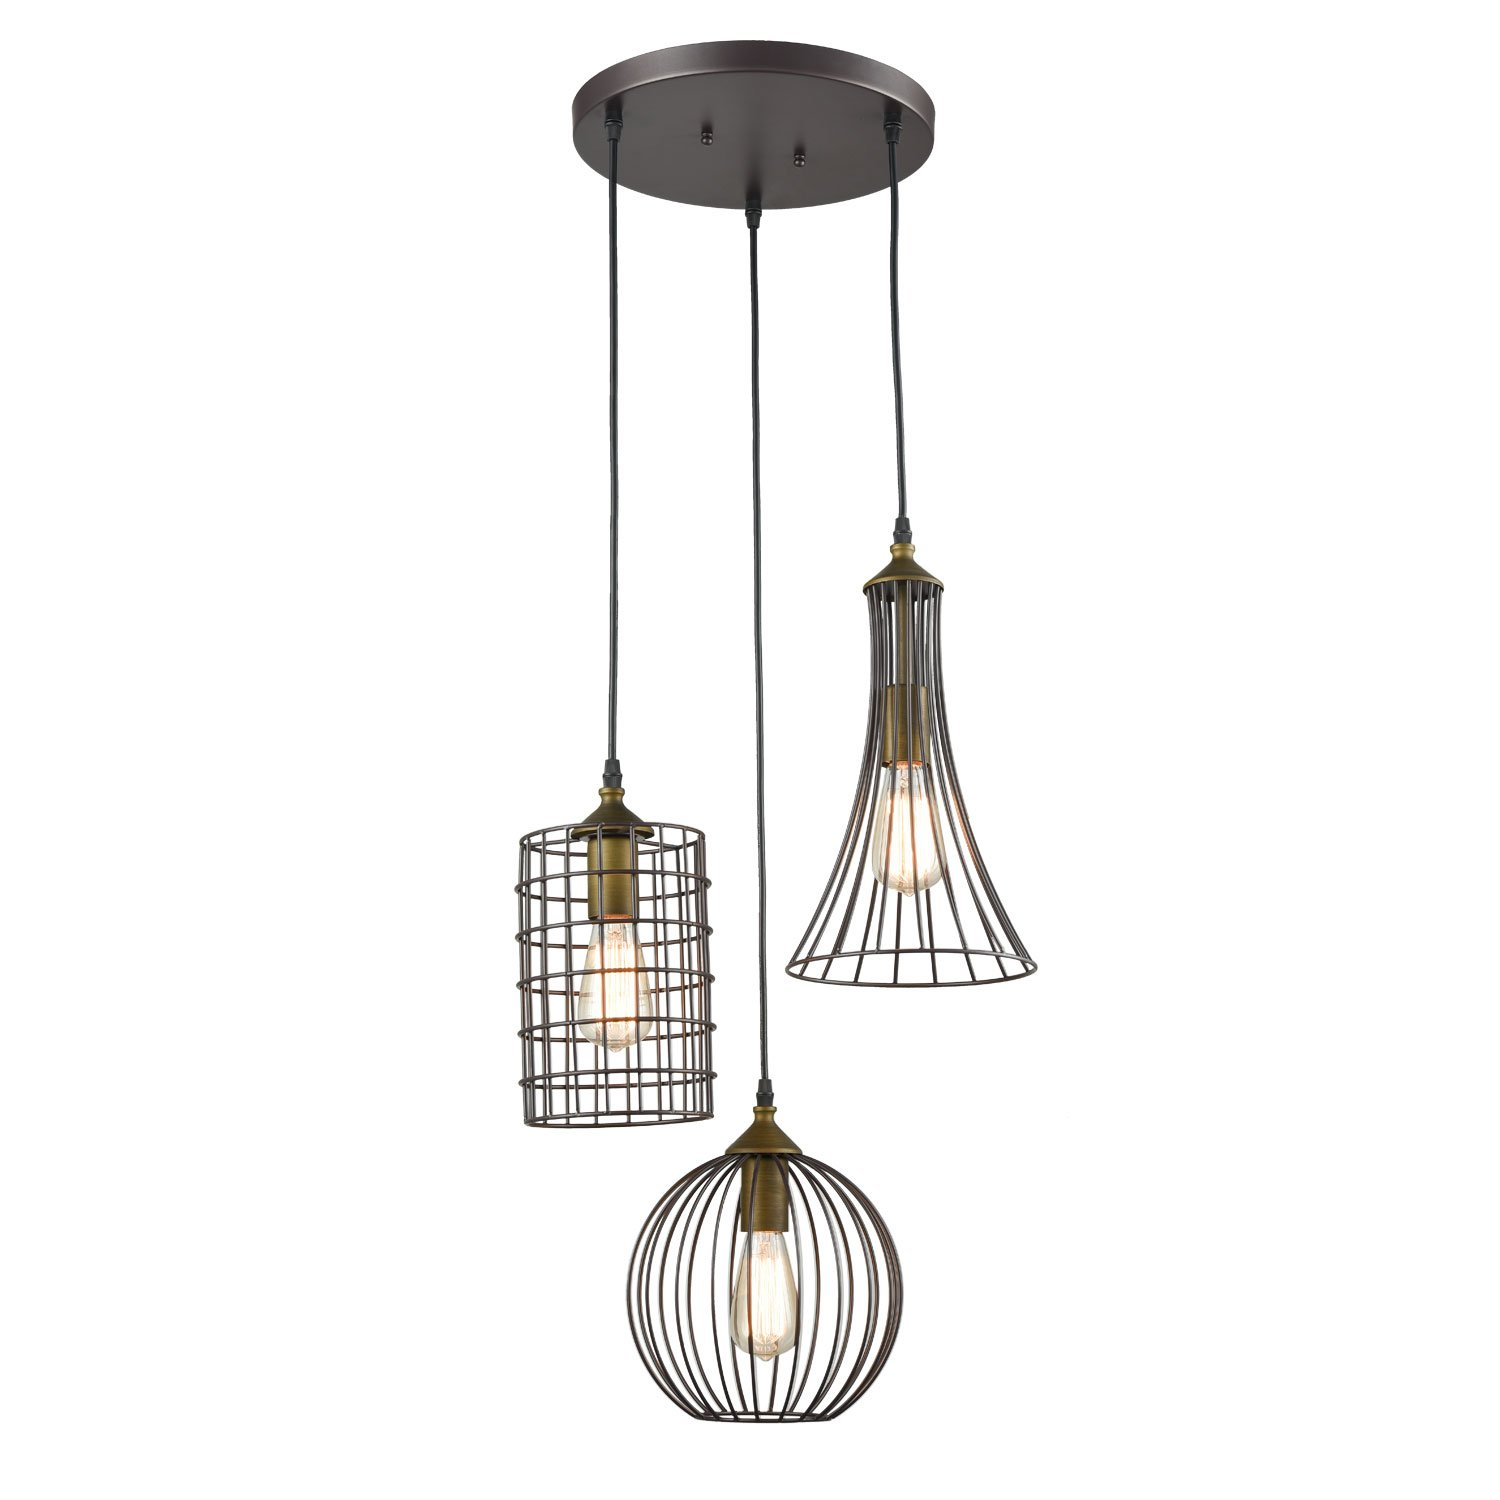 Yobo lighting antique 3 lights oil rubbed bronze chandelier with yobo lighting antique 3 lights oil rubbed bronze chandelier with wire cage amazon arubaitofo Image collections